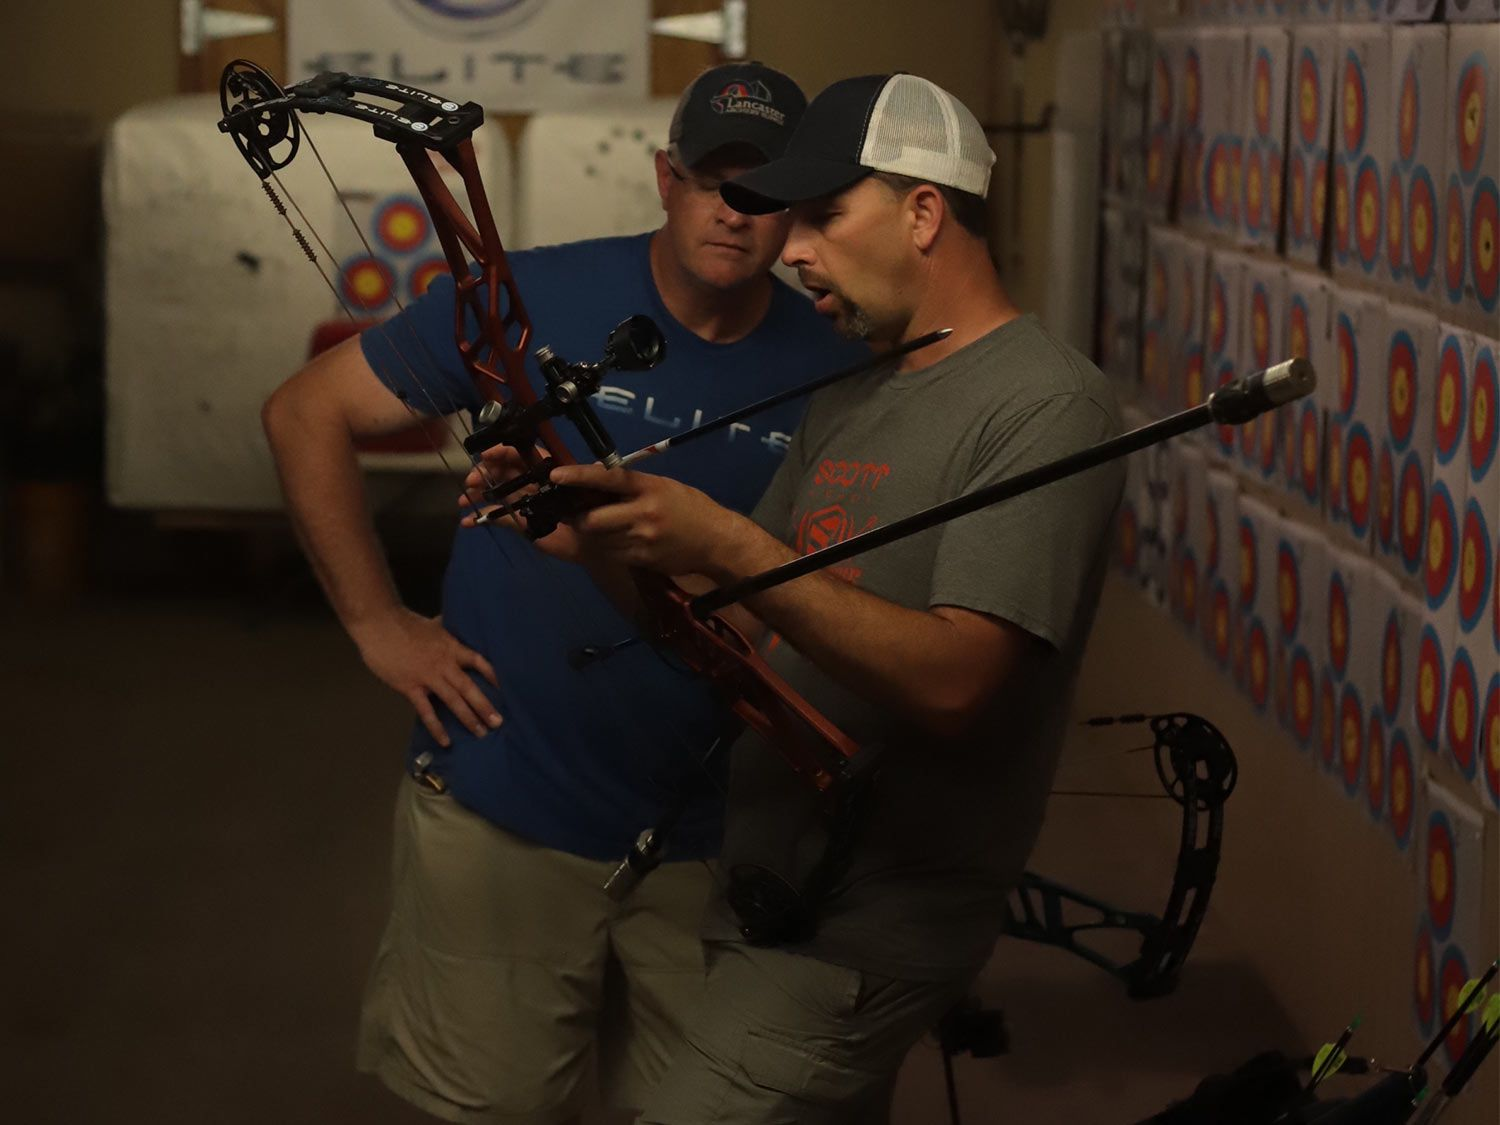 Visit your local bow shop when business is slow so you can shoot a variety of bows at your draw length.